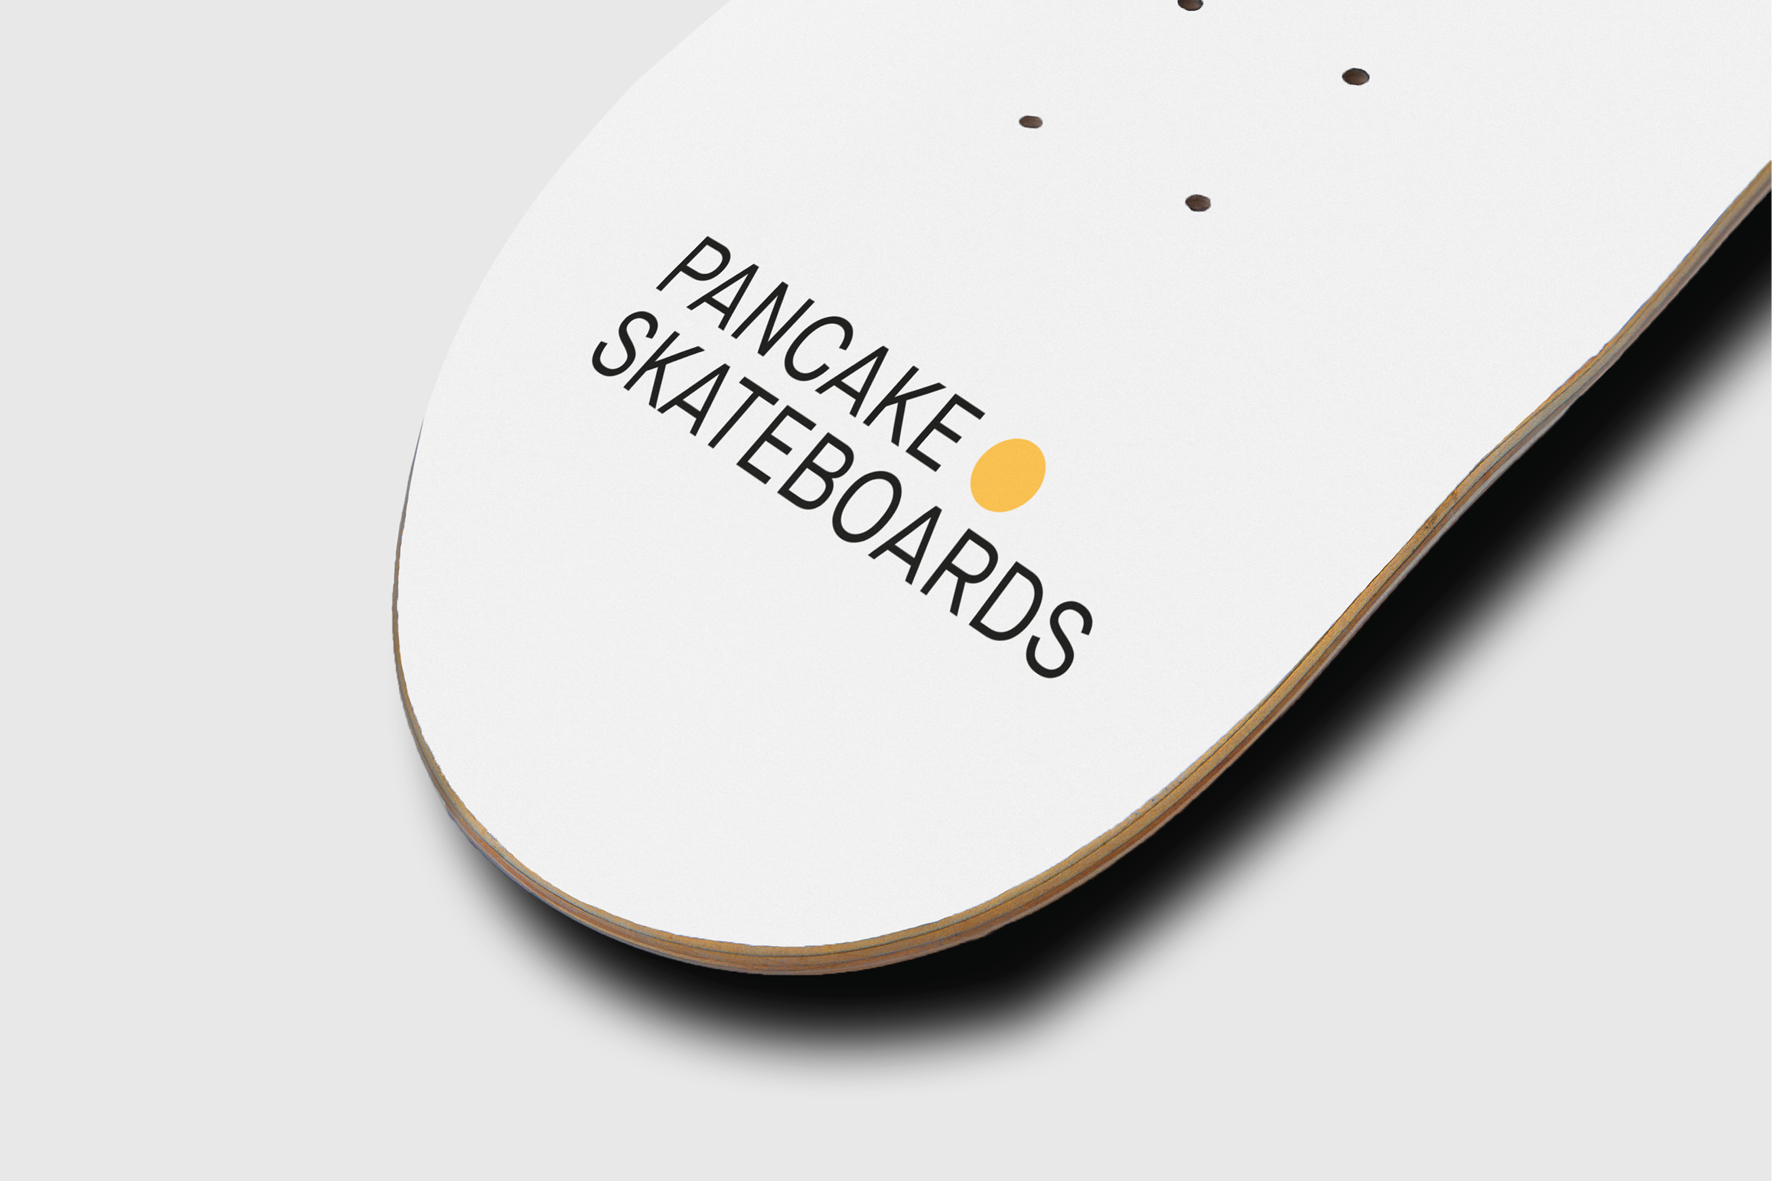 2pancake_skateboards_item-6